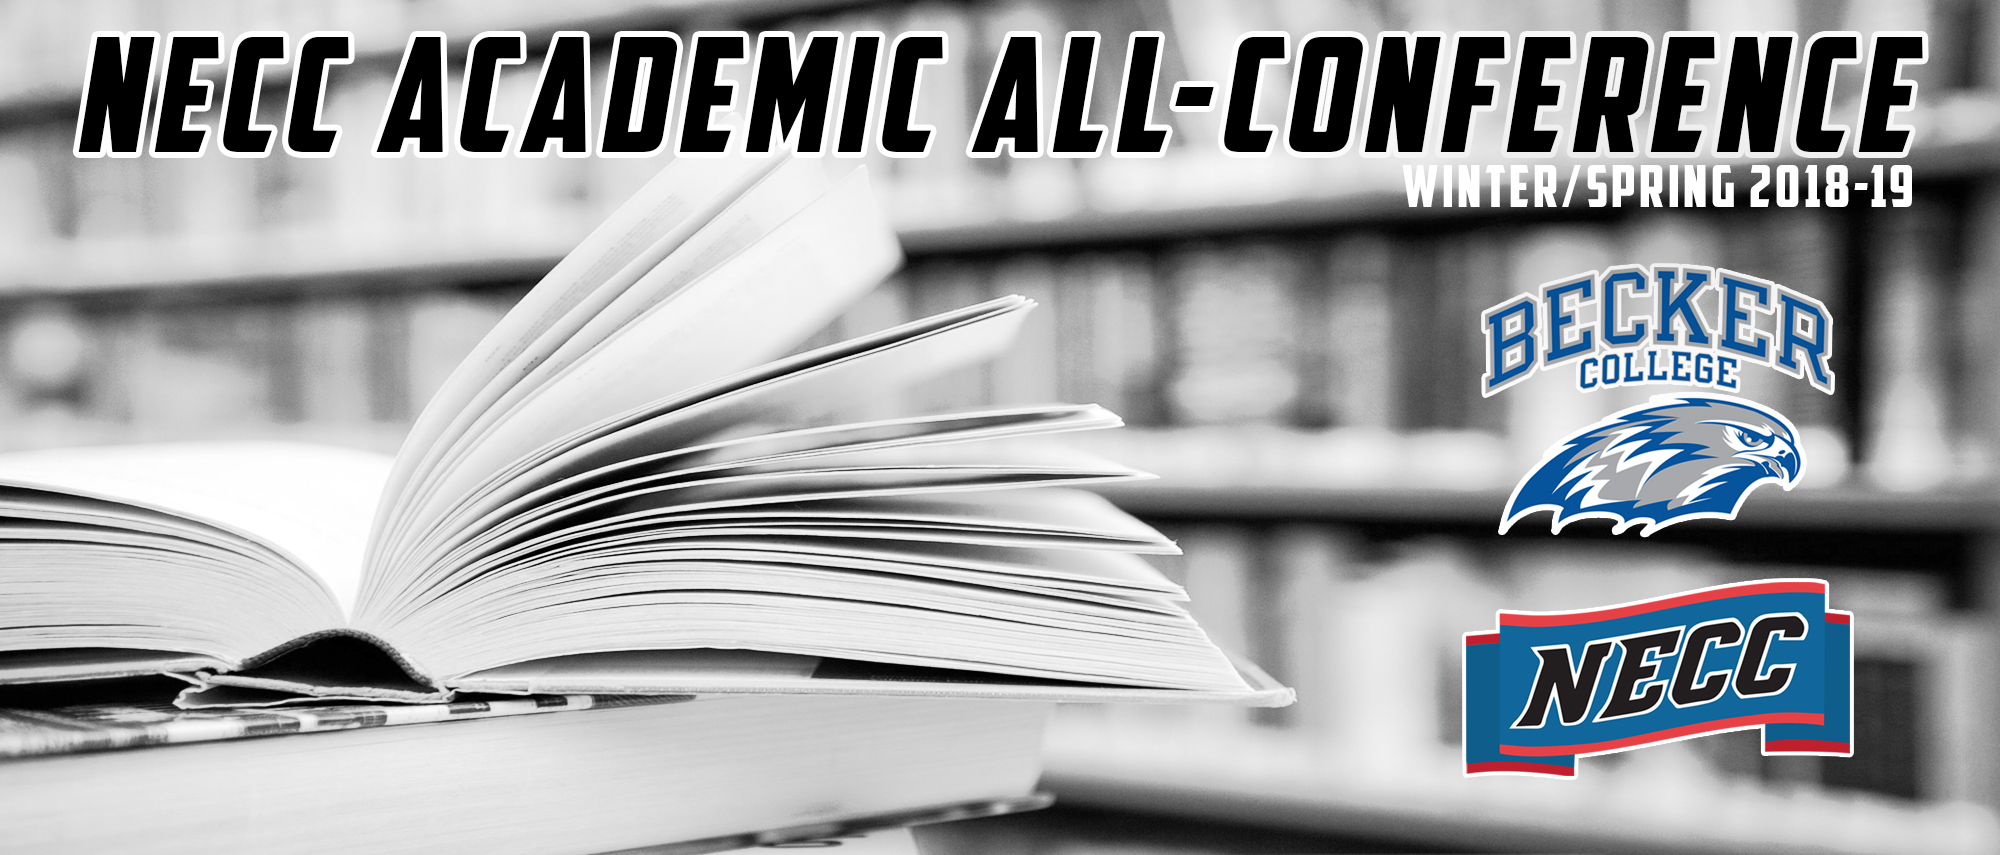 21 Becker Student-Athletes Honored on NECC 2018-19 Winter/Spring Academic All-Conference Team